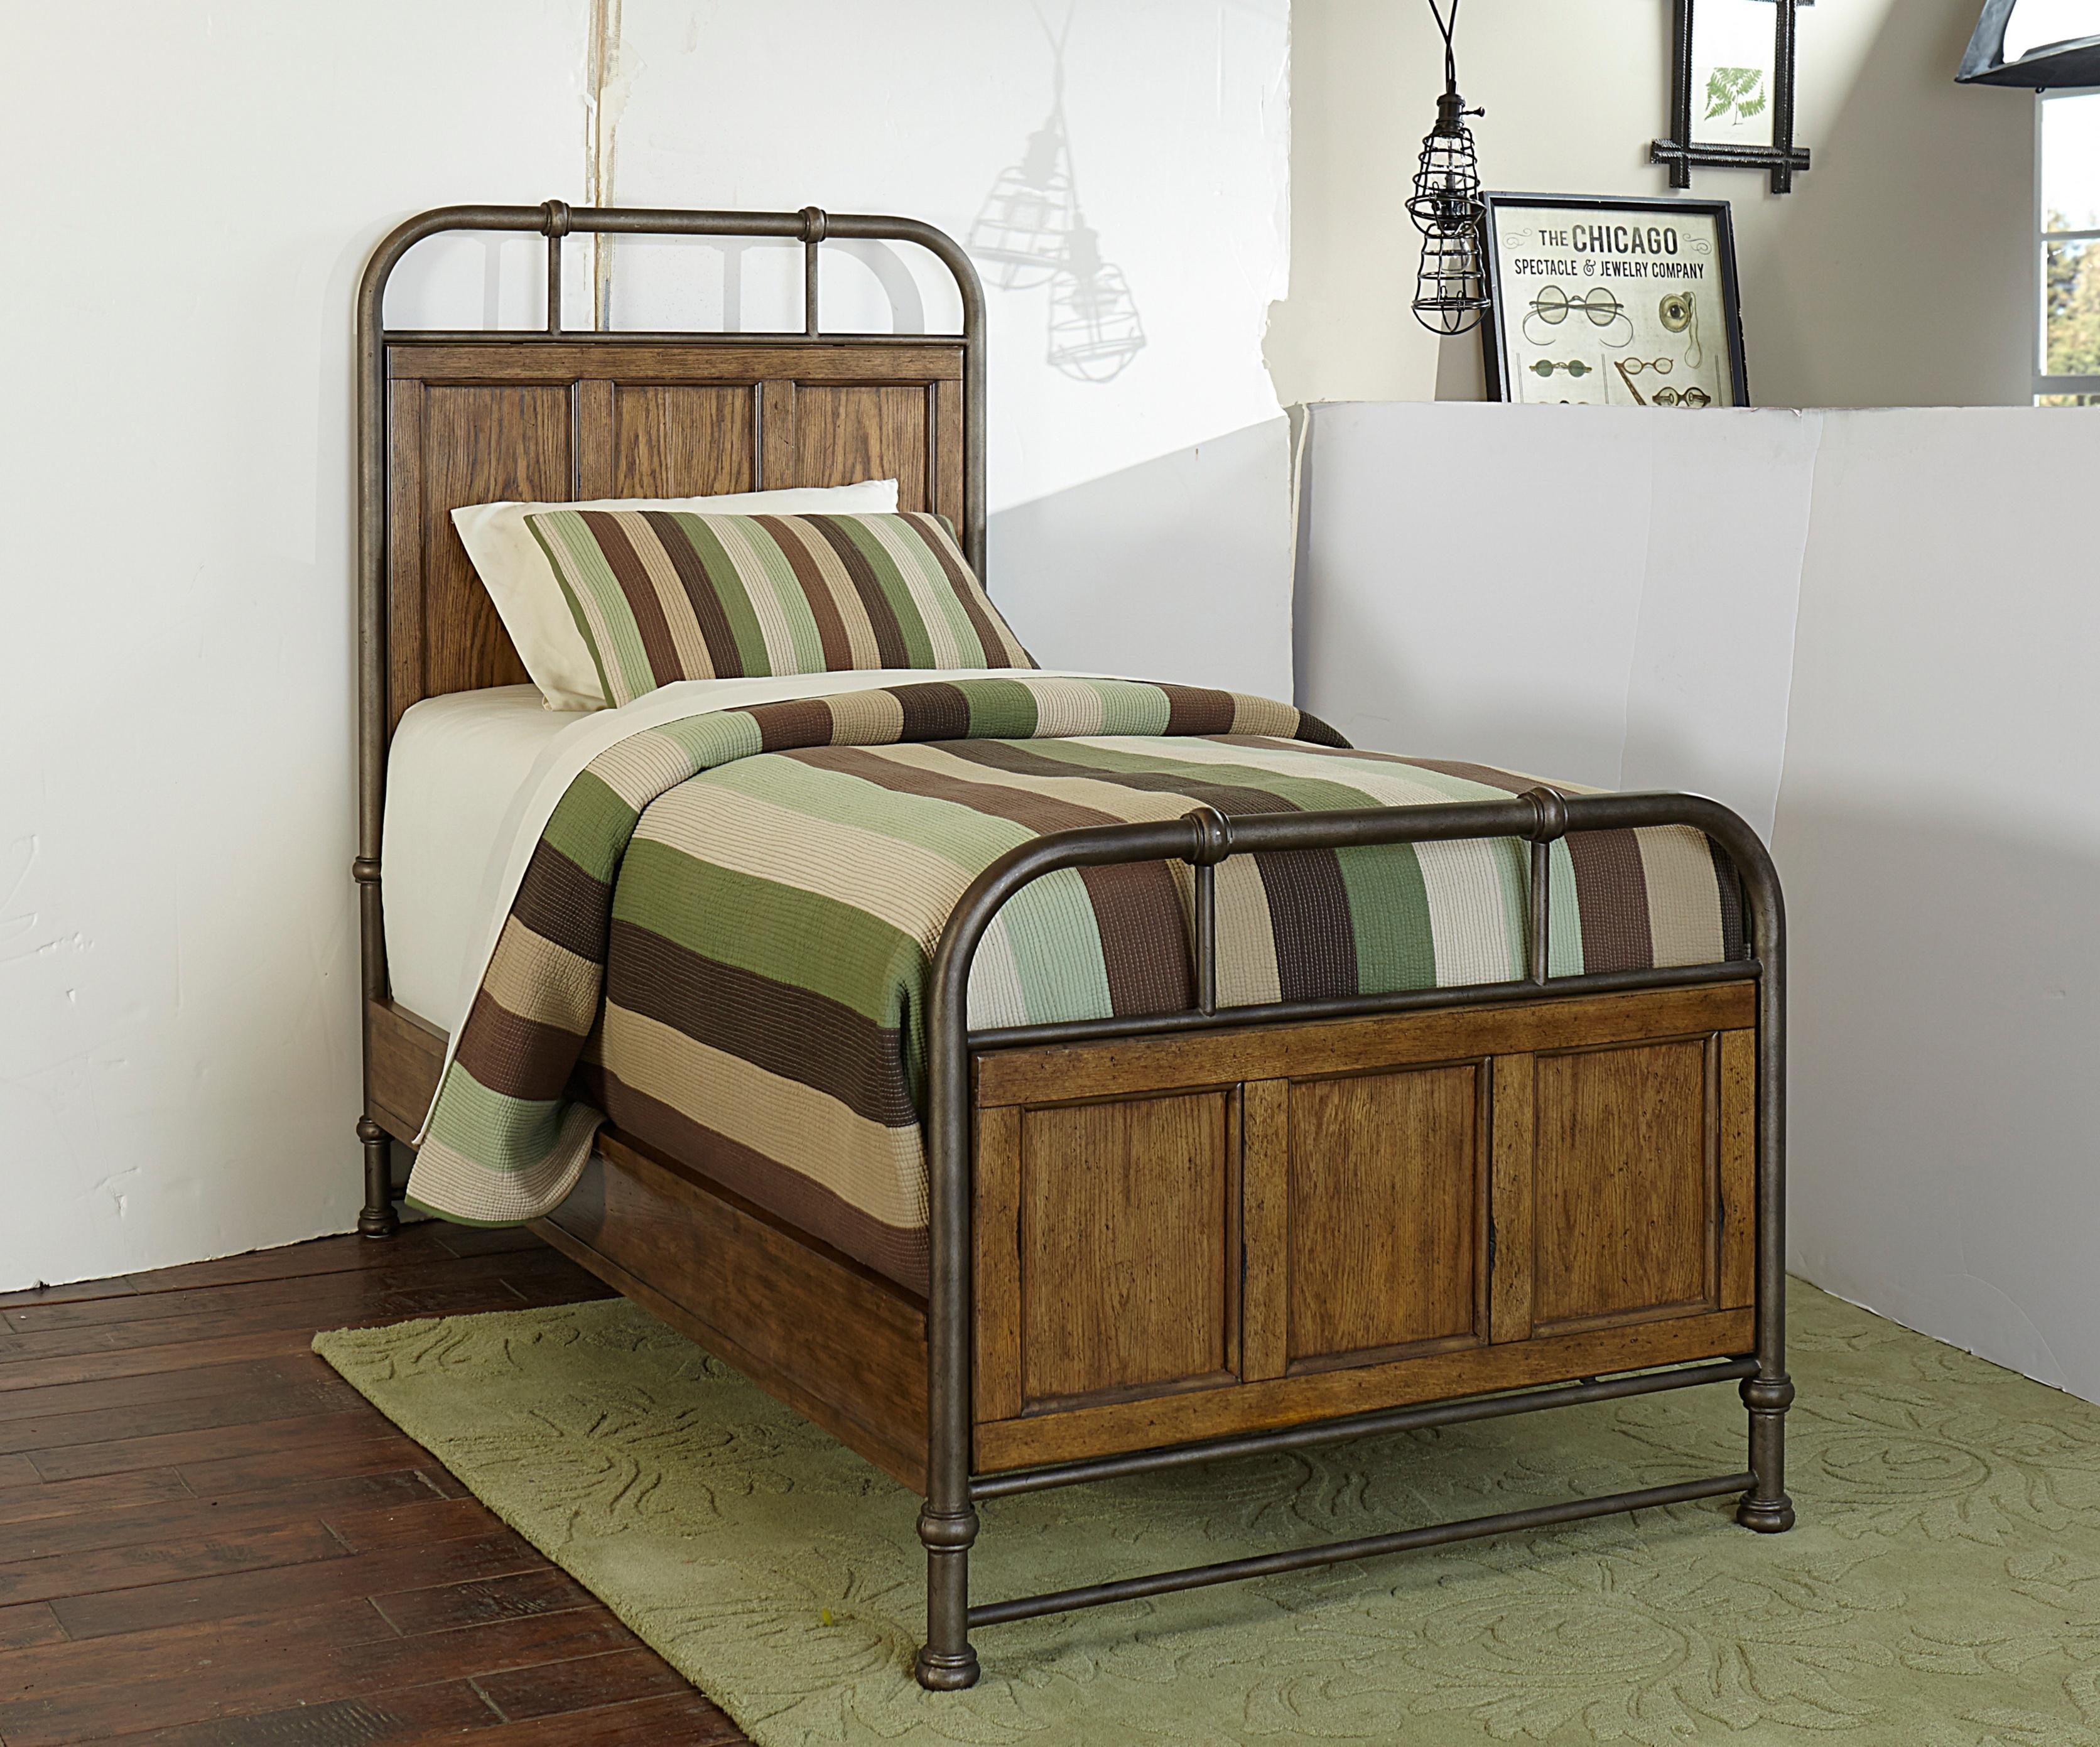 new vintage 4808 by broyhill furniture baer s